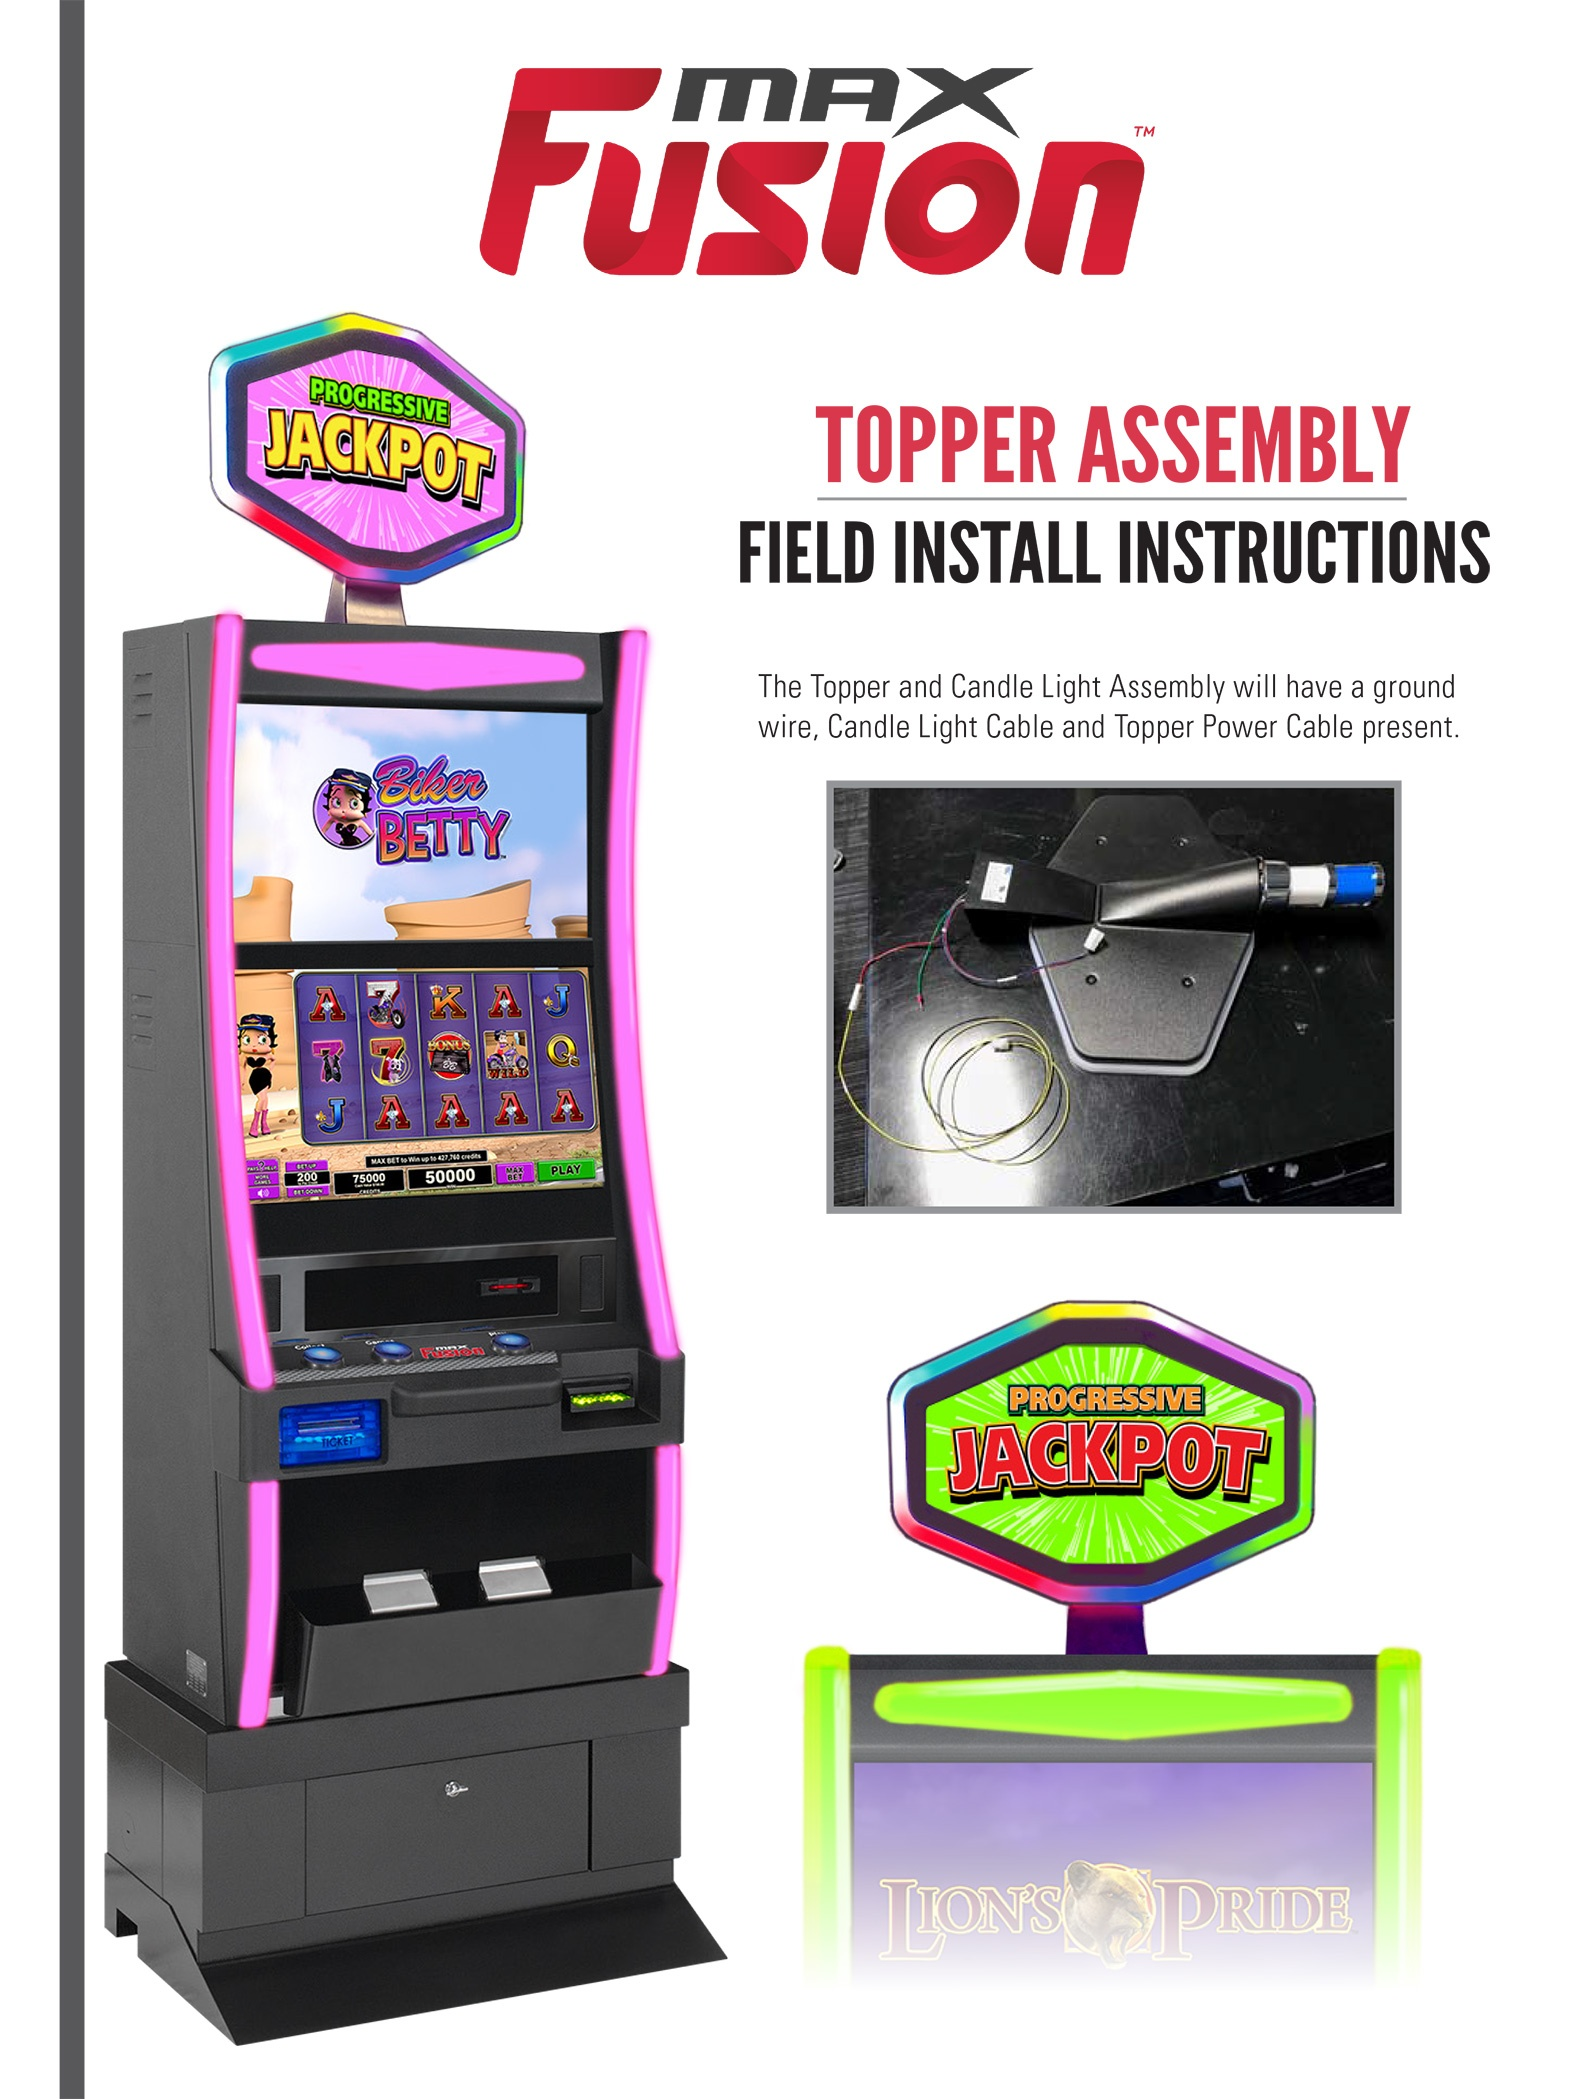 MaxFusion Topper Assembly Promotional Materials/Equipment Flyers & Brochures